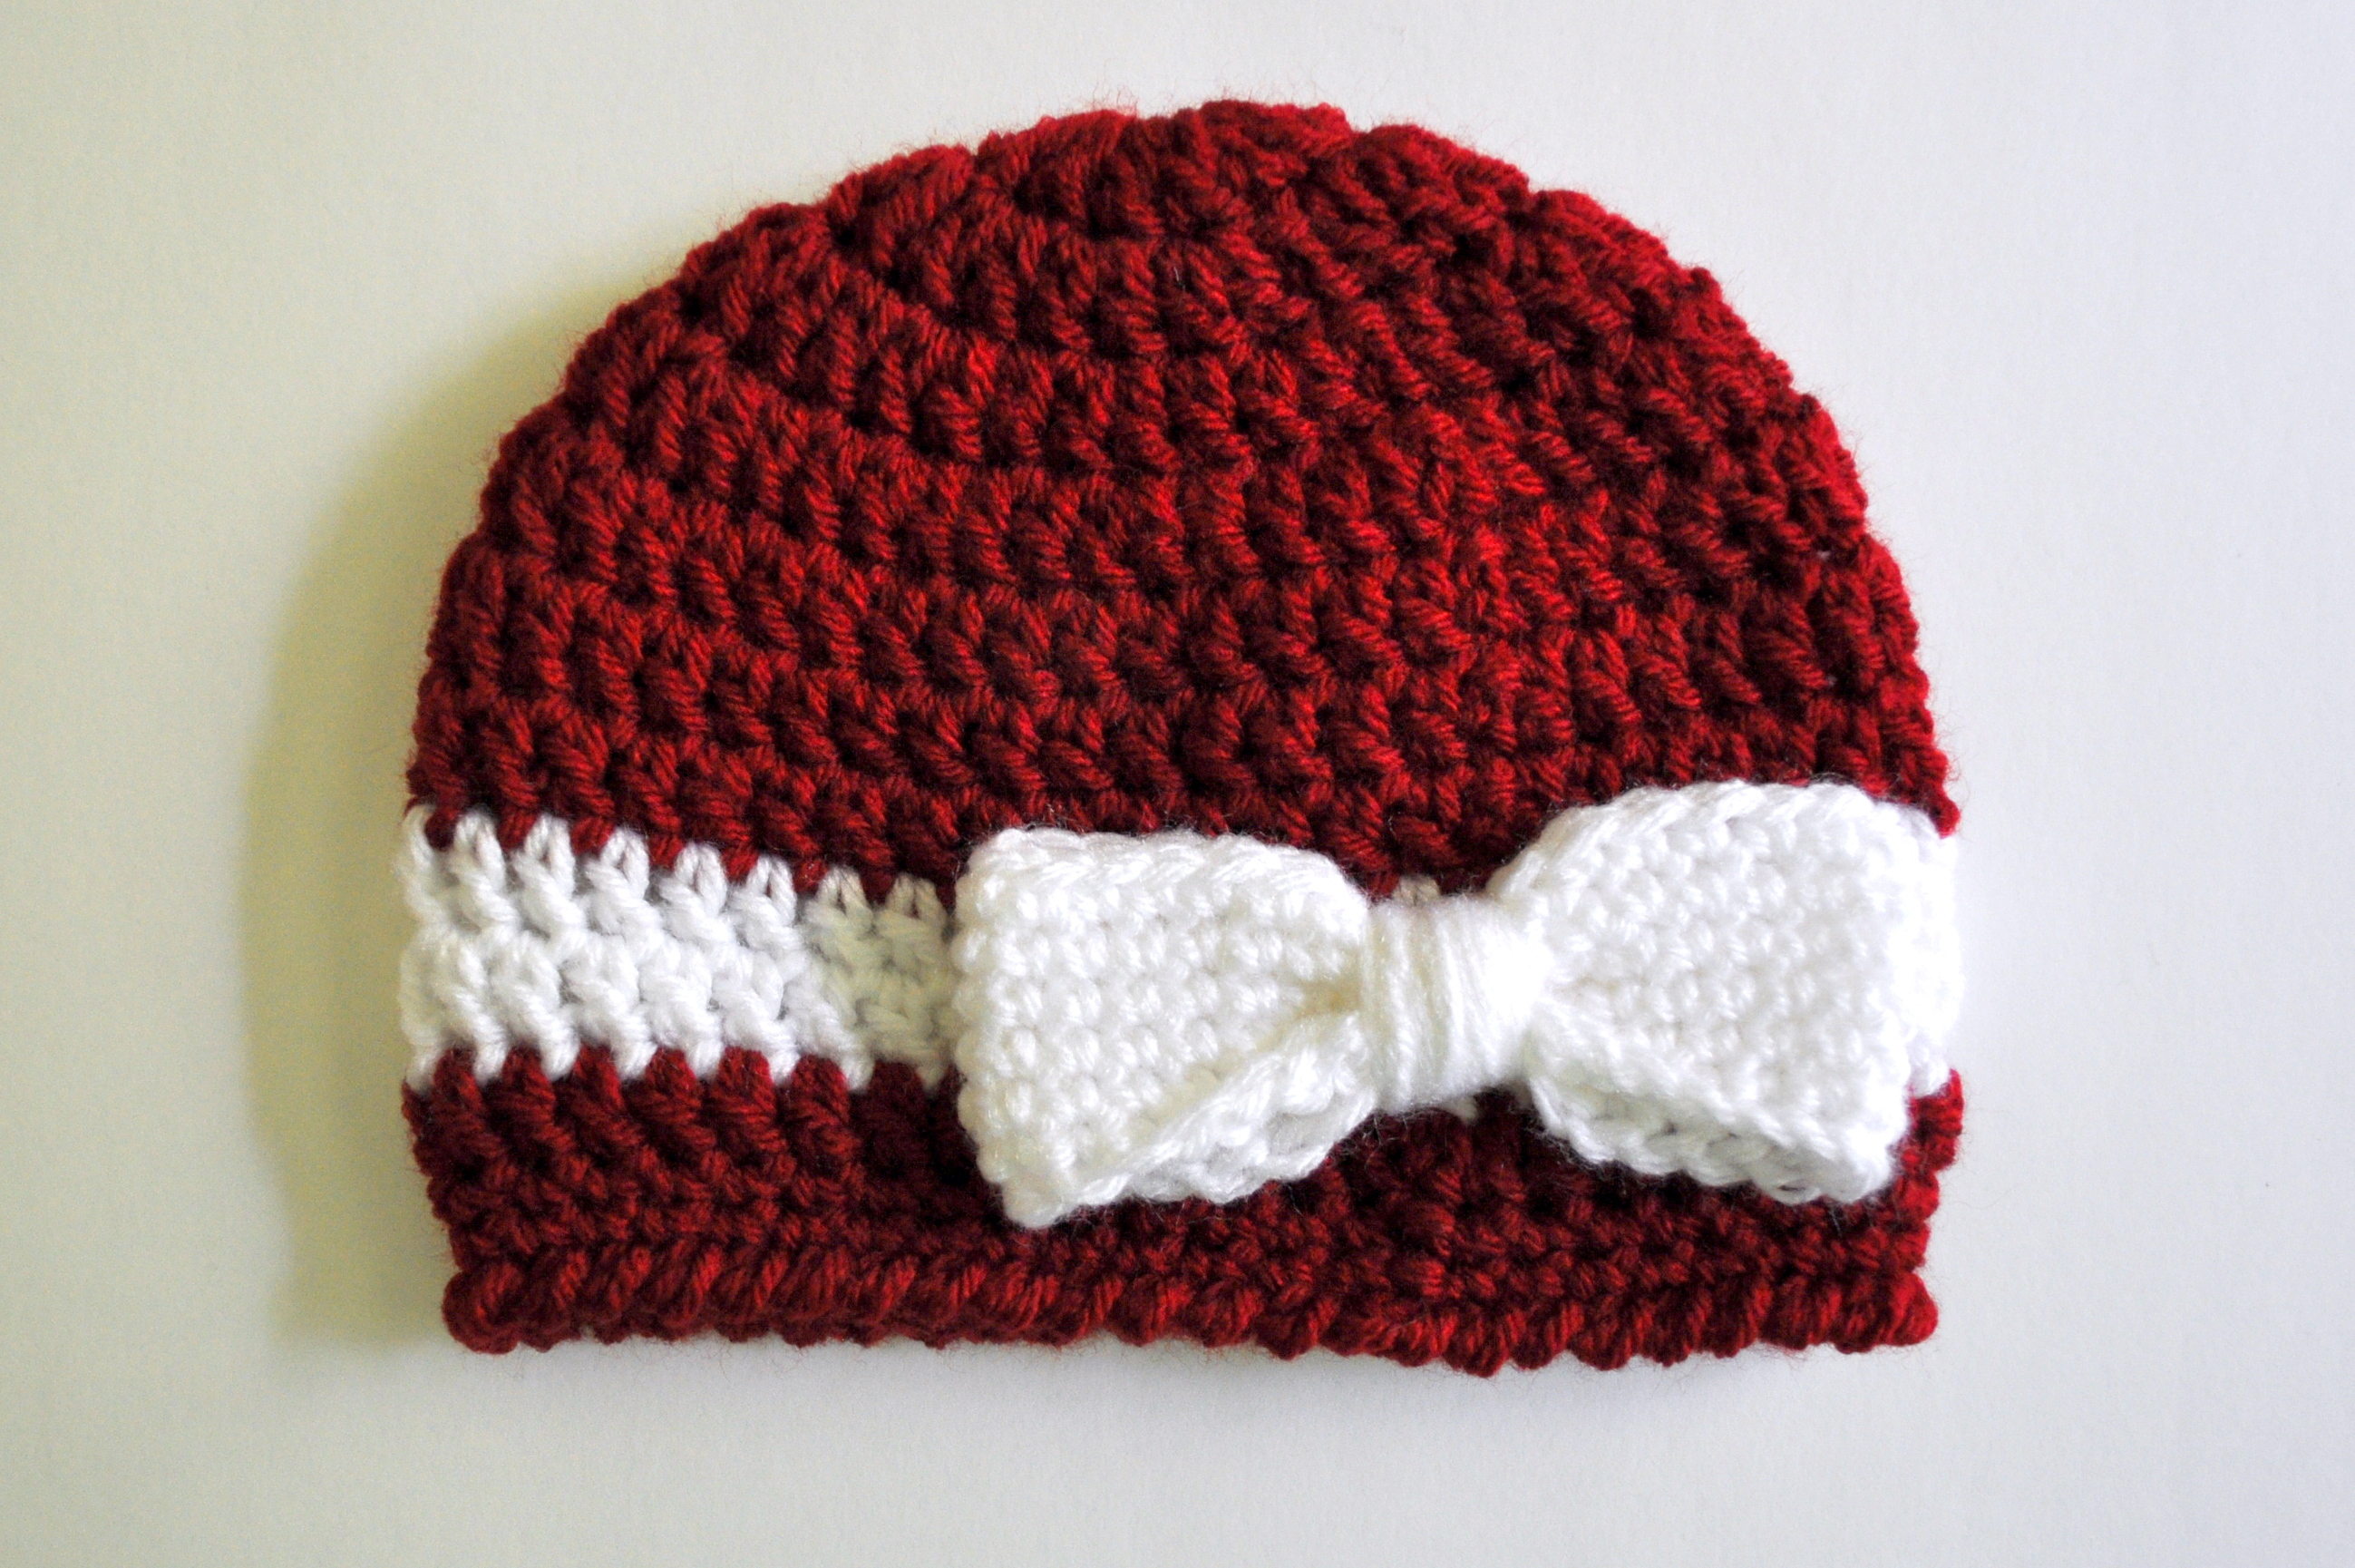 Free Crochet Patterns For A Baby Blanket : Free Pattern: Crochet Bow and Ribbon Baby Hat Classy Crochet